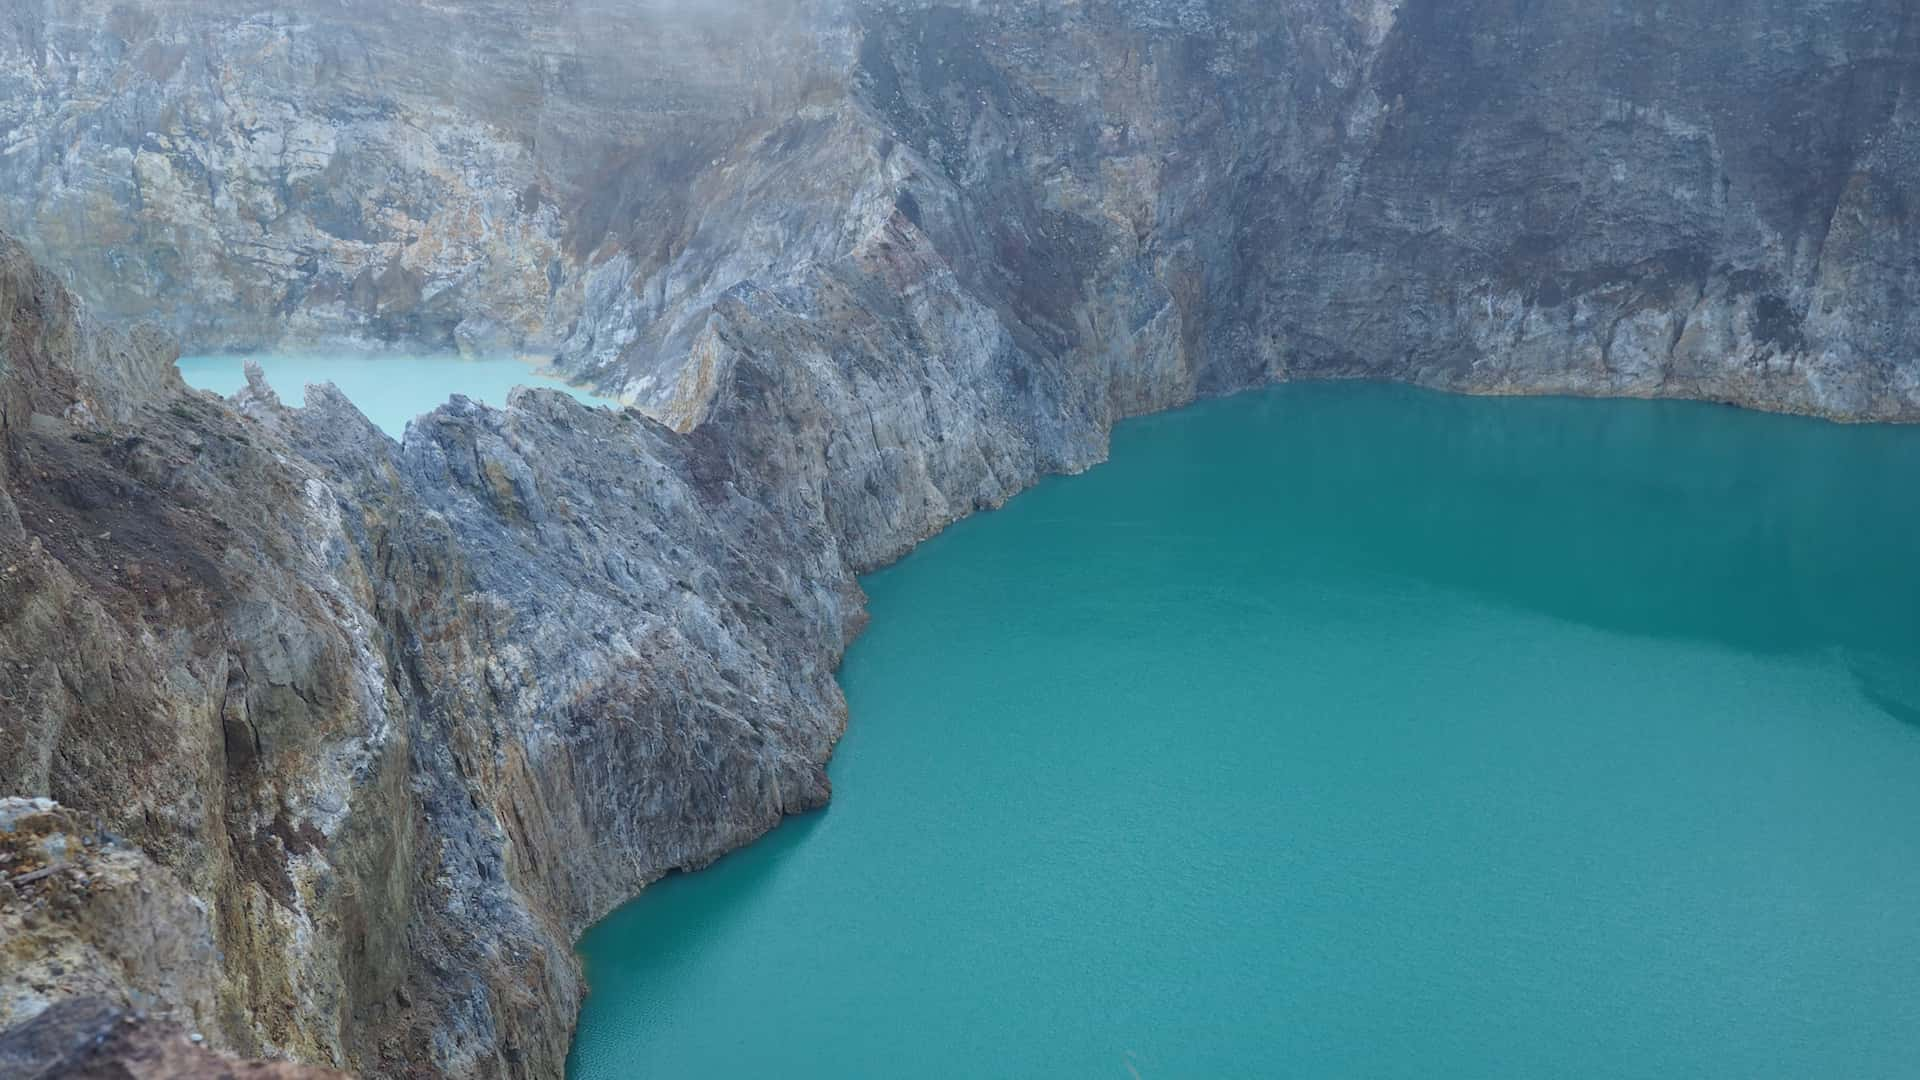 THE INCREDIBLE CRATER LAKES OF KELIMUTU